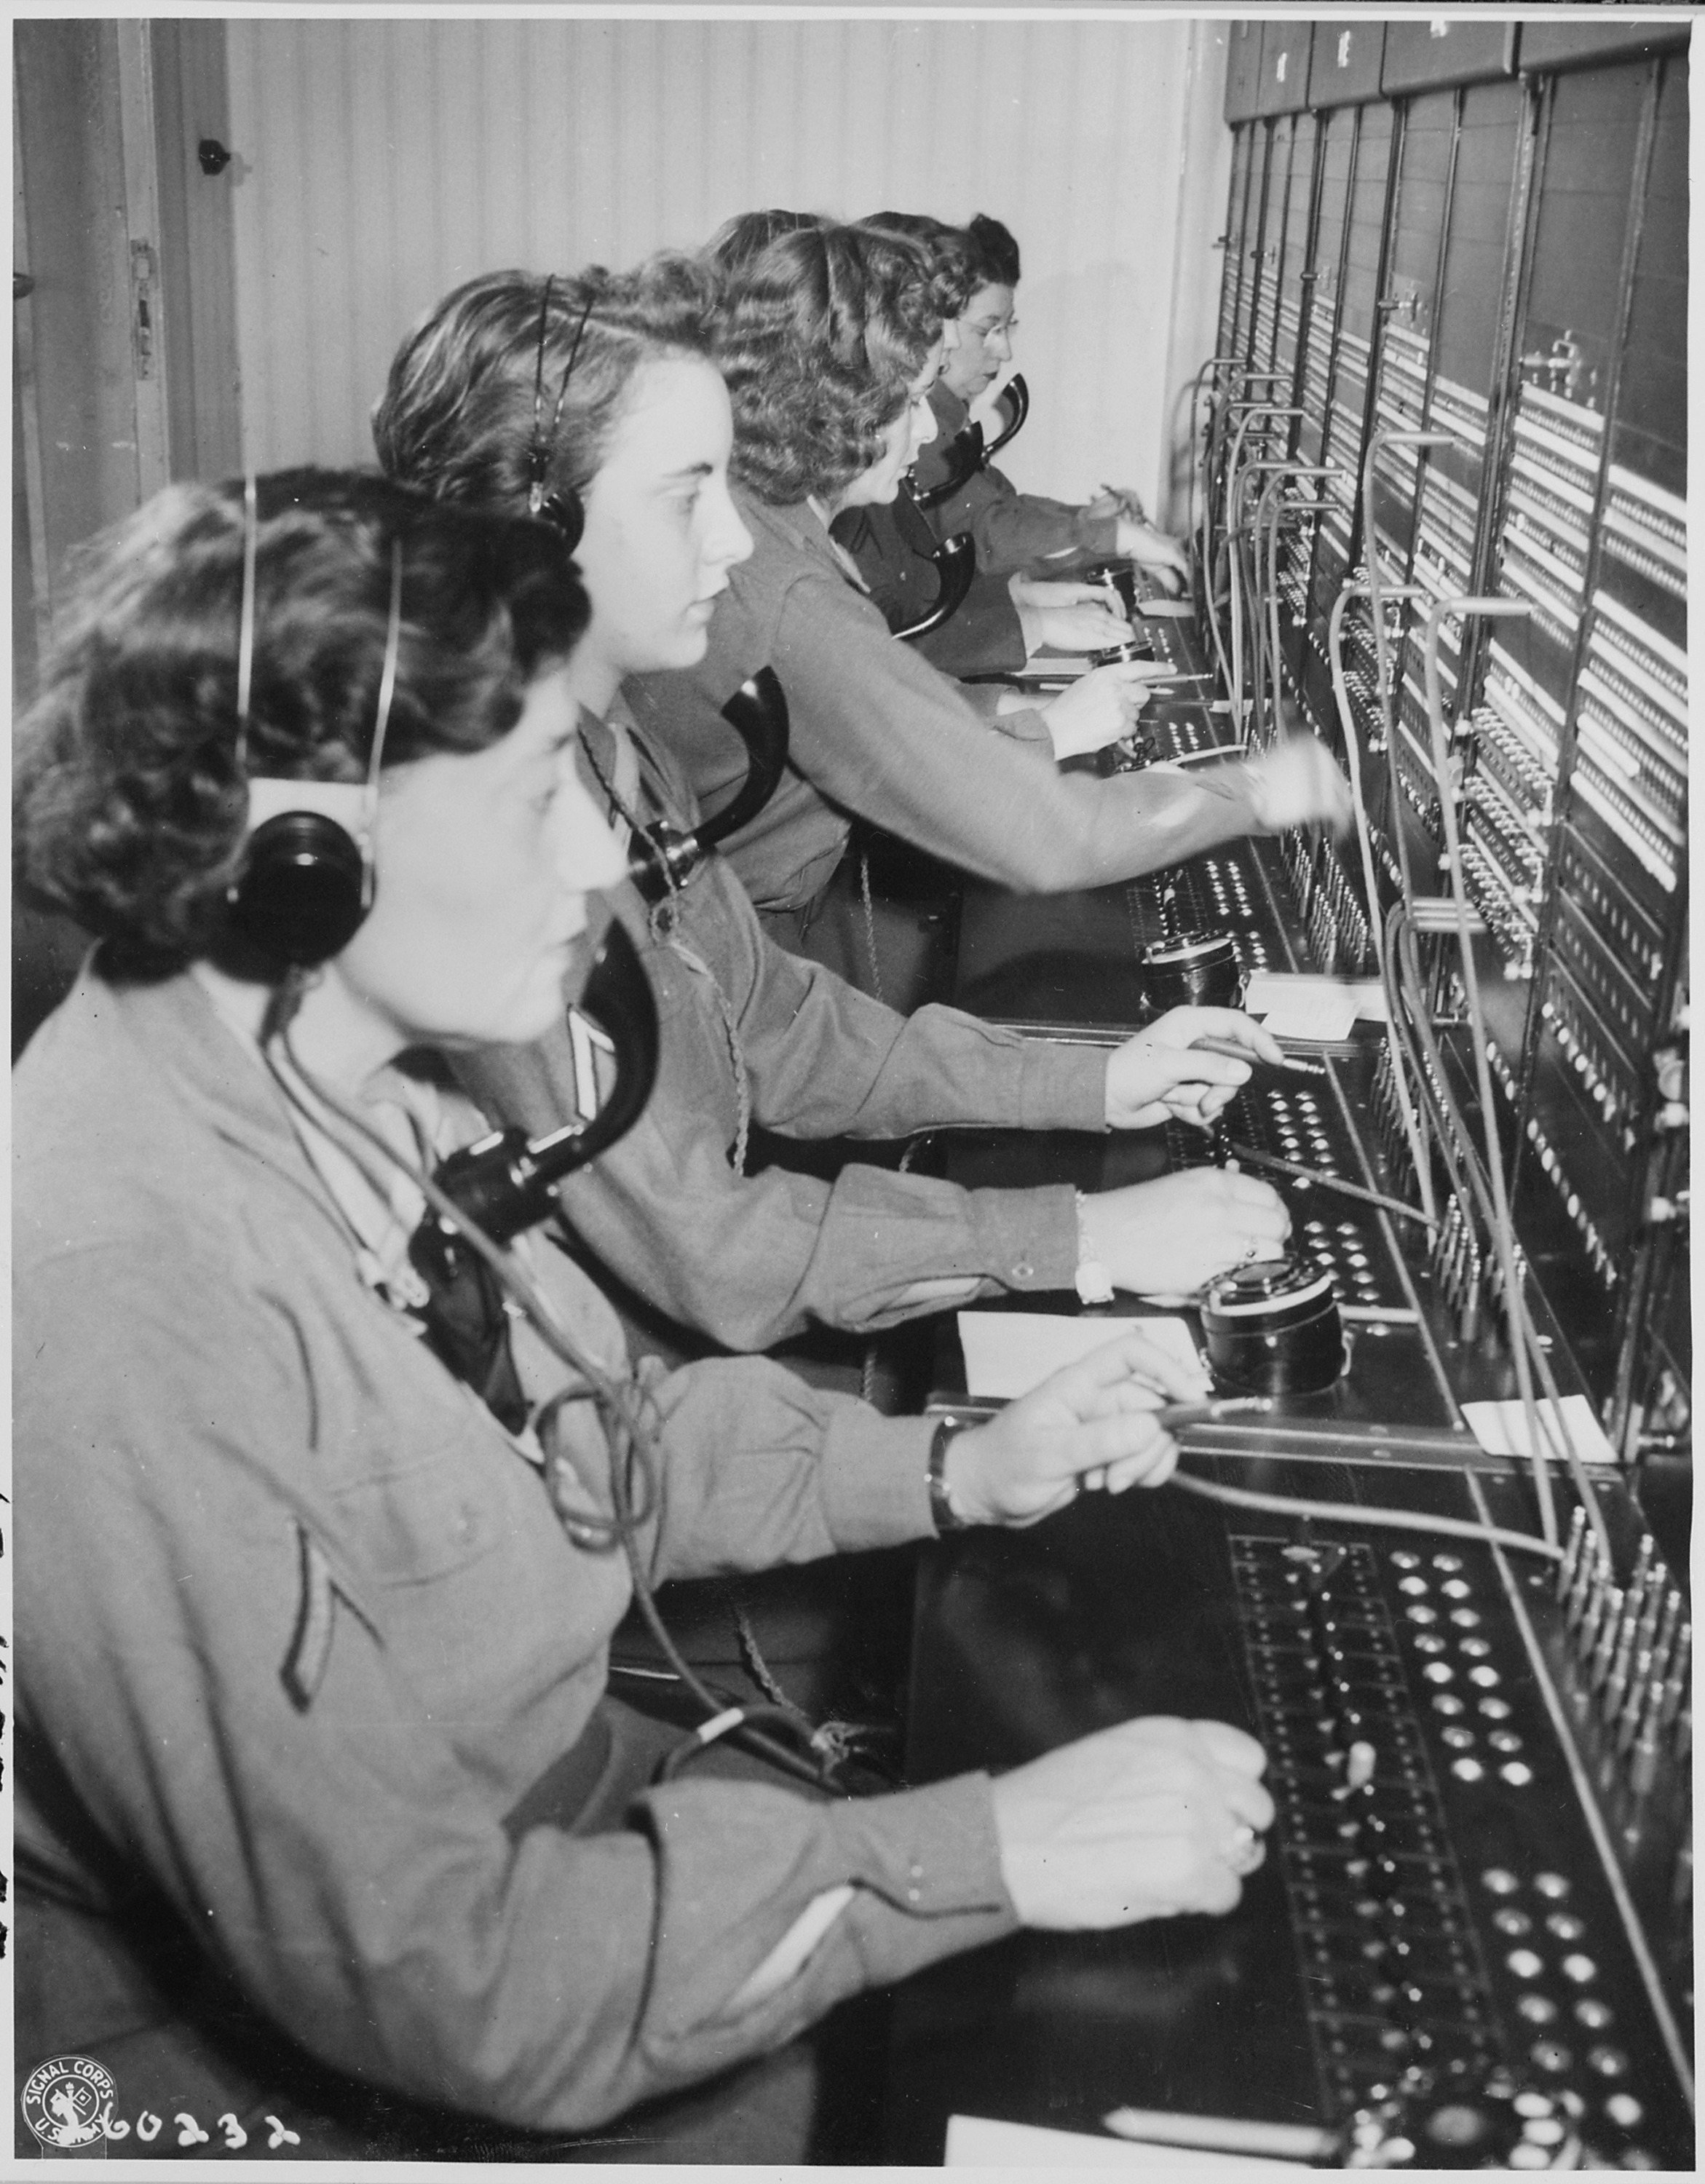 IVR phone systems have effectively replaced the old fashioned switchboard.